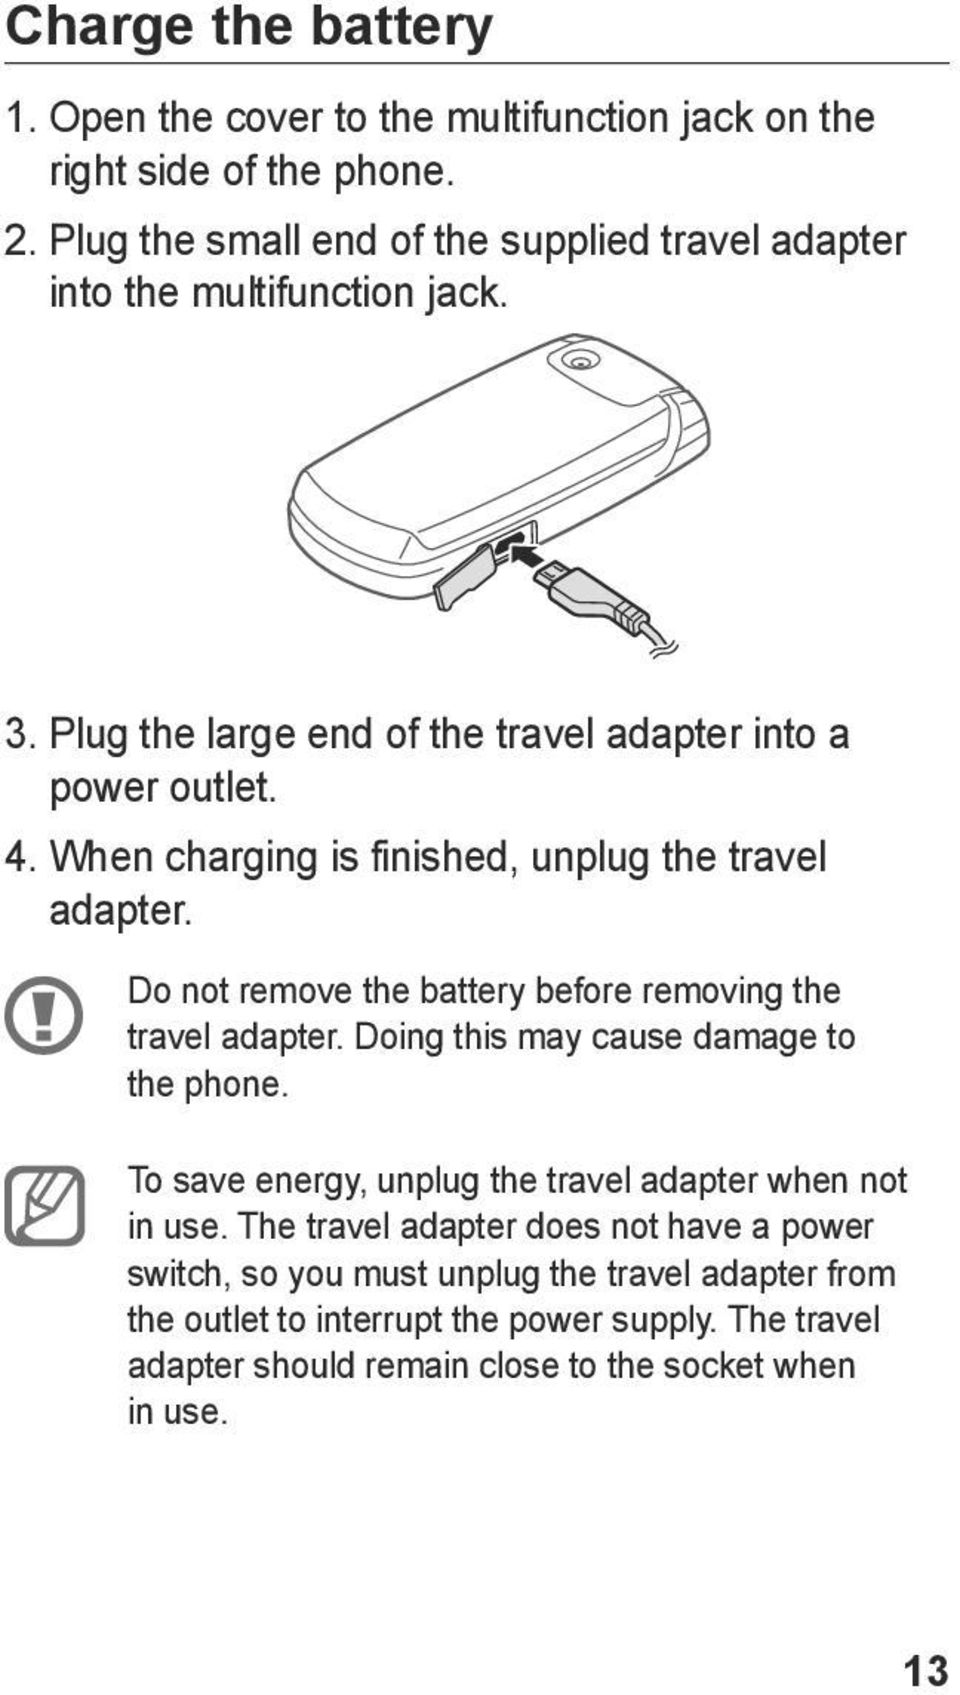 When charging is finished, unplug the travel adapter. Do not remove the battery before removing the travel adapter. Doing this may cause damage to the phone.